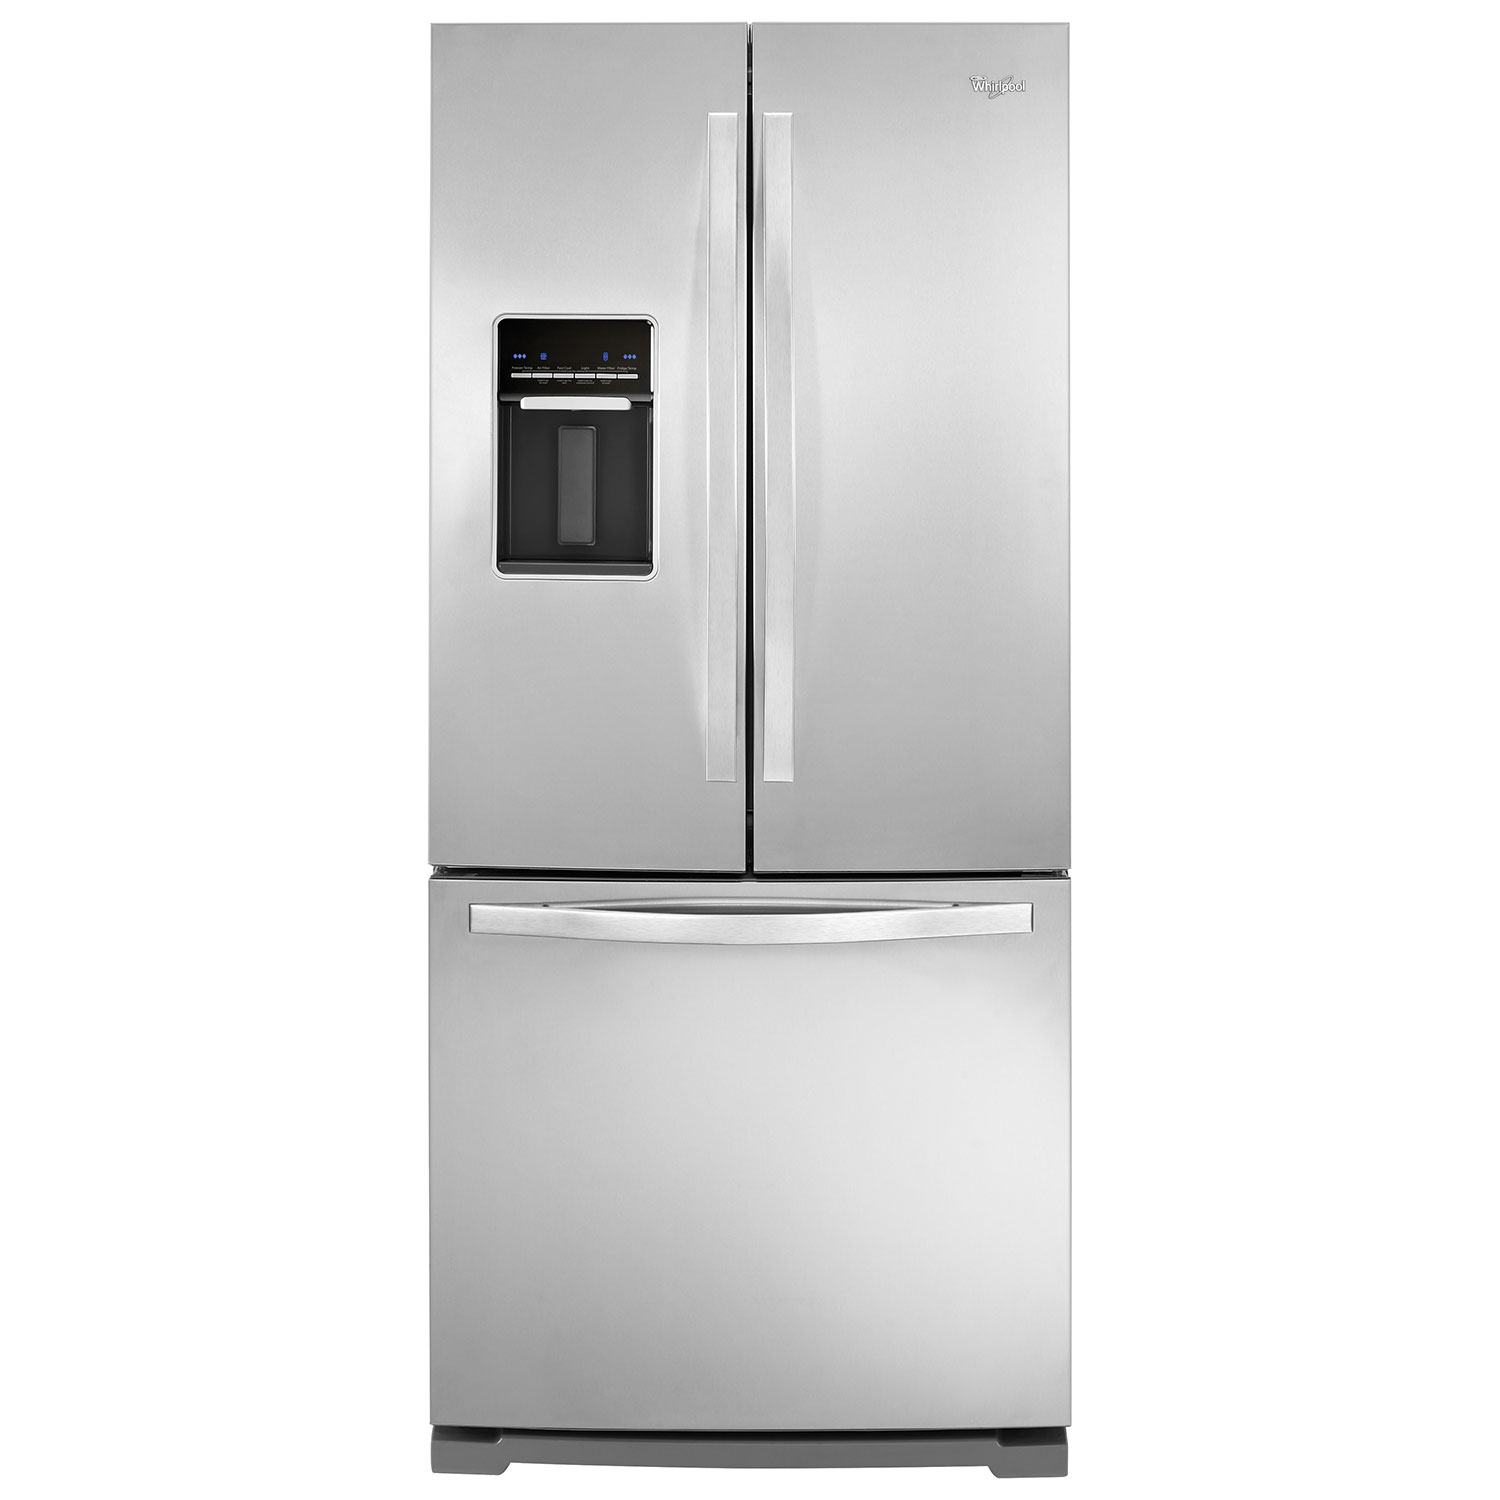 Whirpool 30 197 Cu Ft French Door Refrigerator With Water